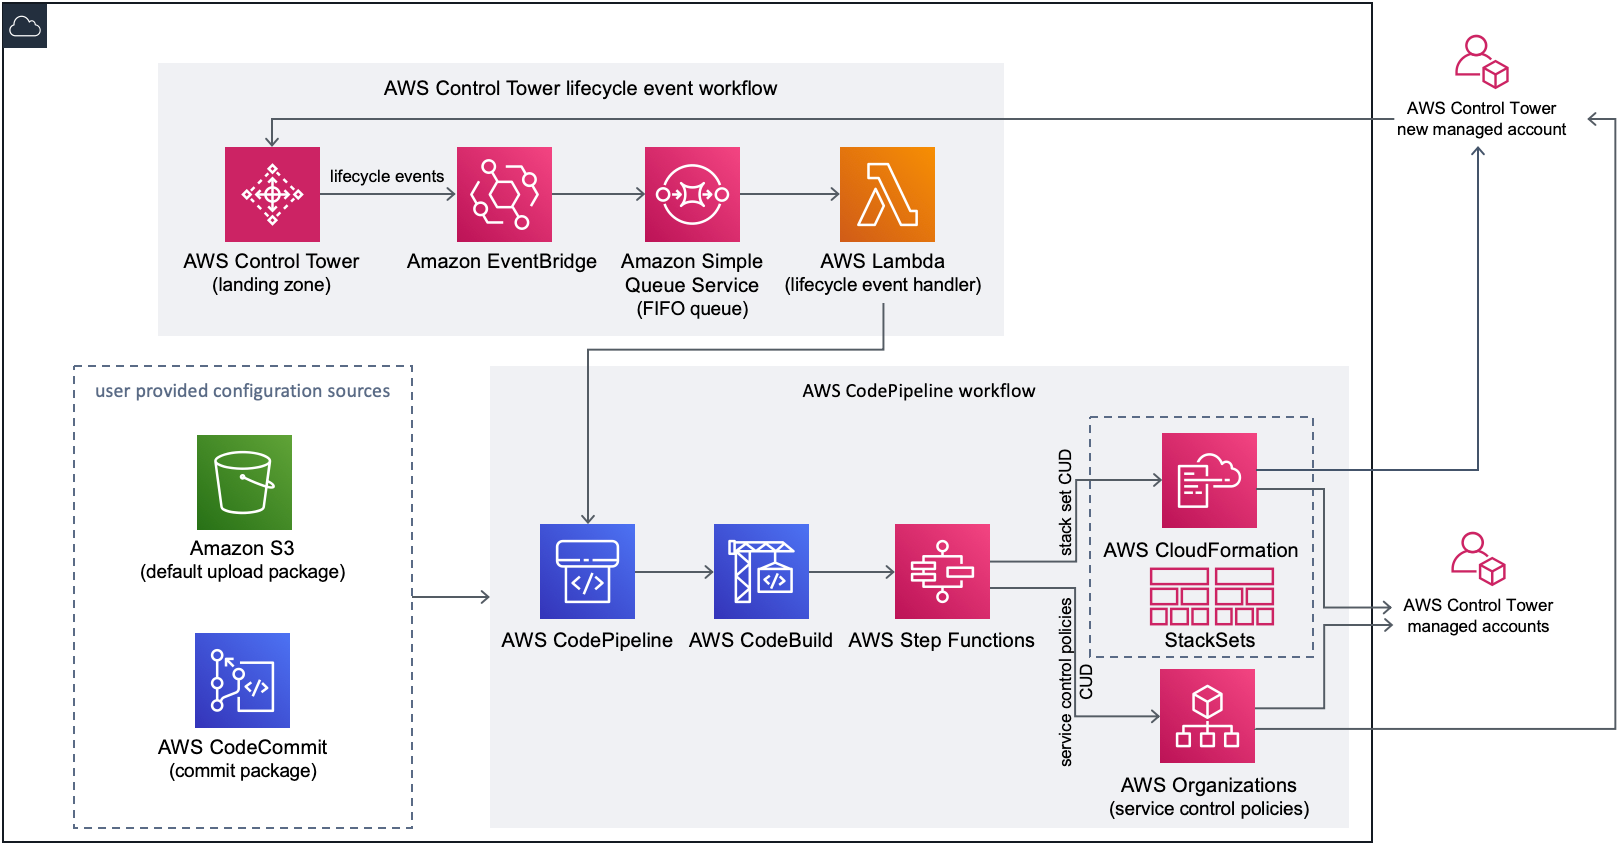 Figure 1. Architecture for Customizations for AWS Control Tower